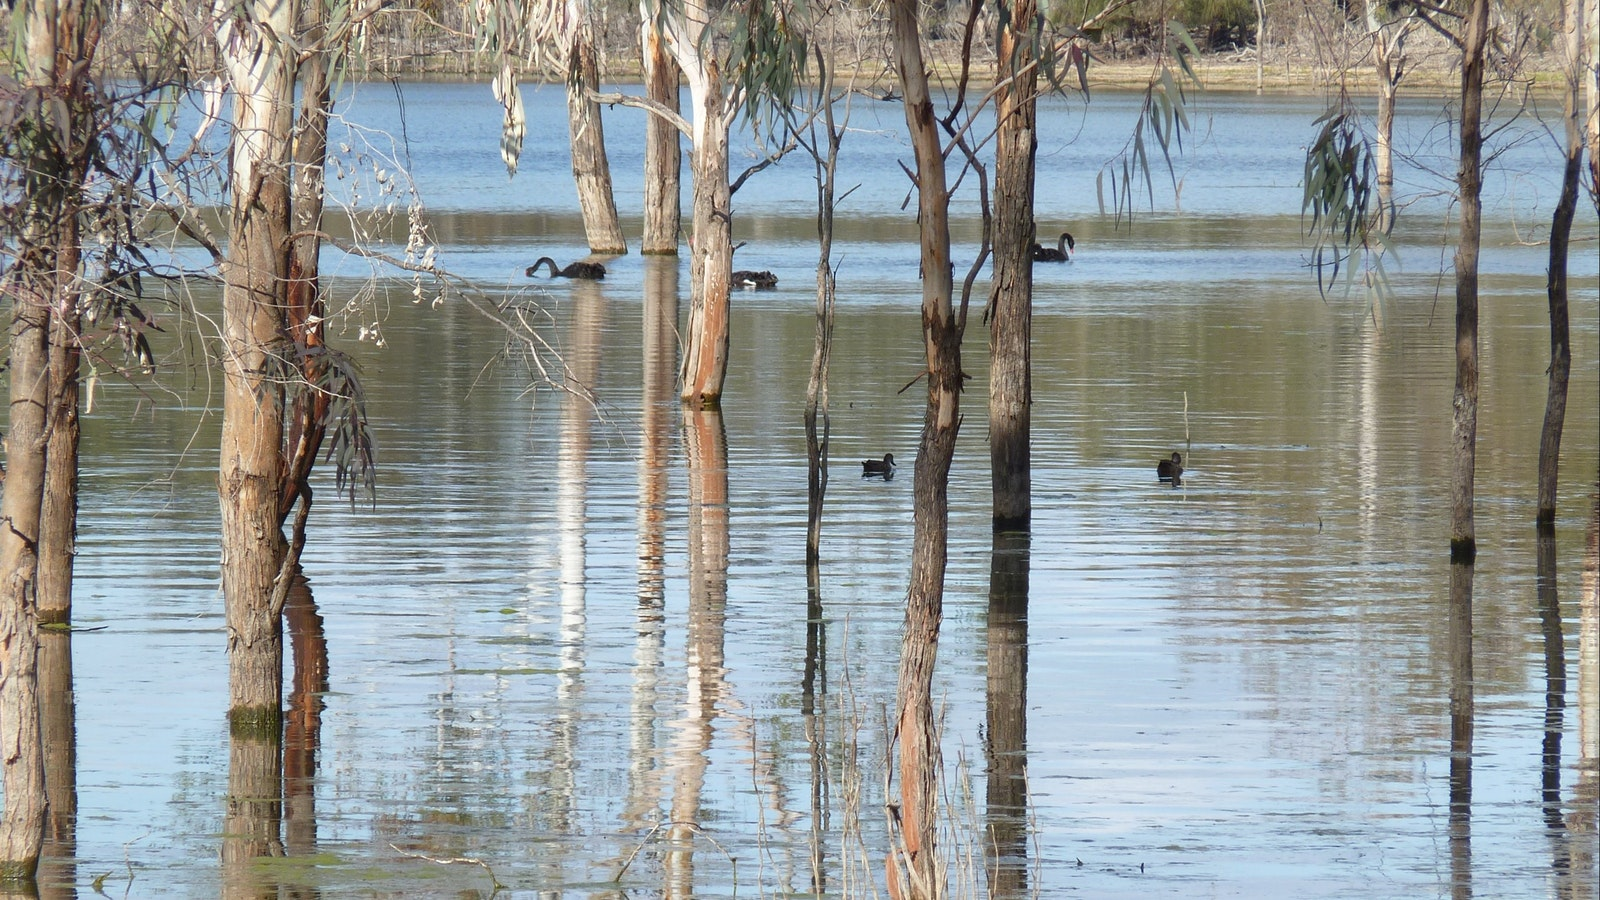 Water birds on the Hattah Lakes add to the mallee birds seen on this tour